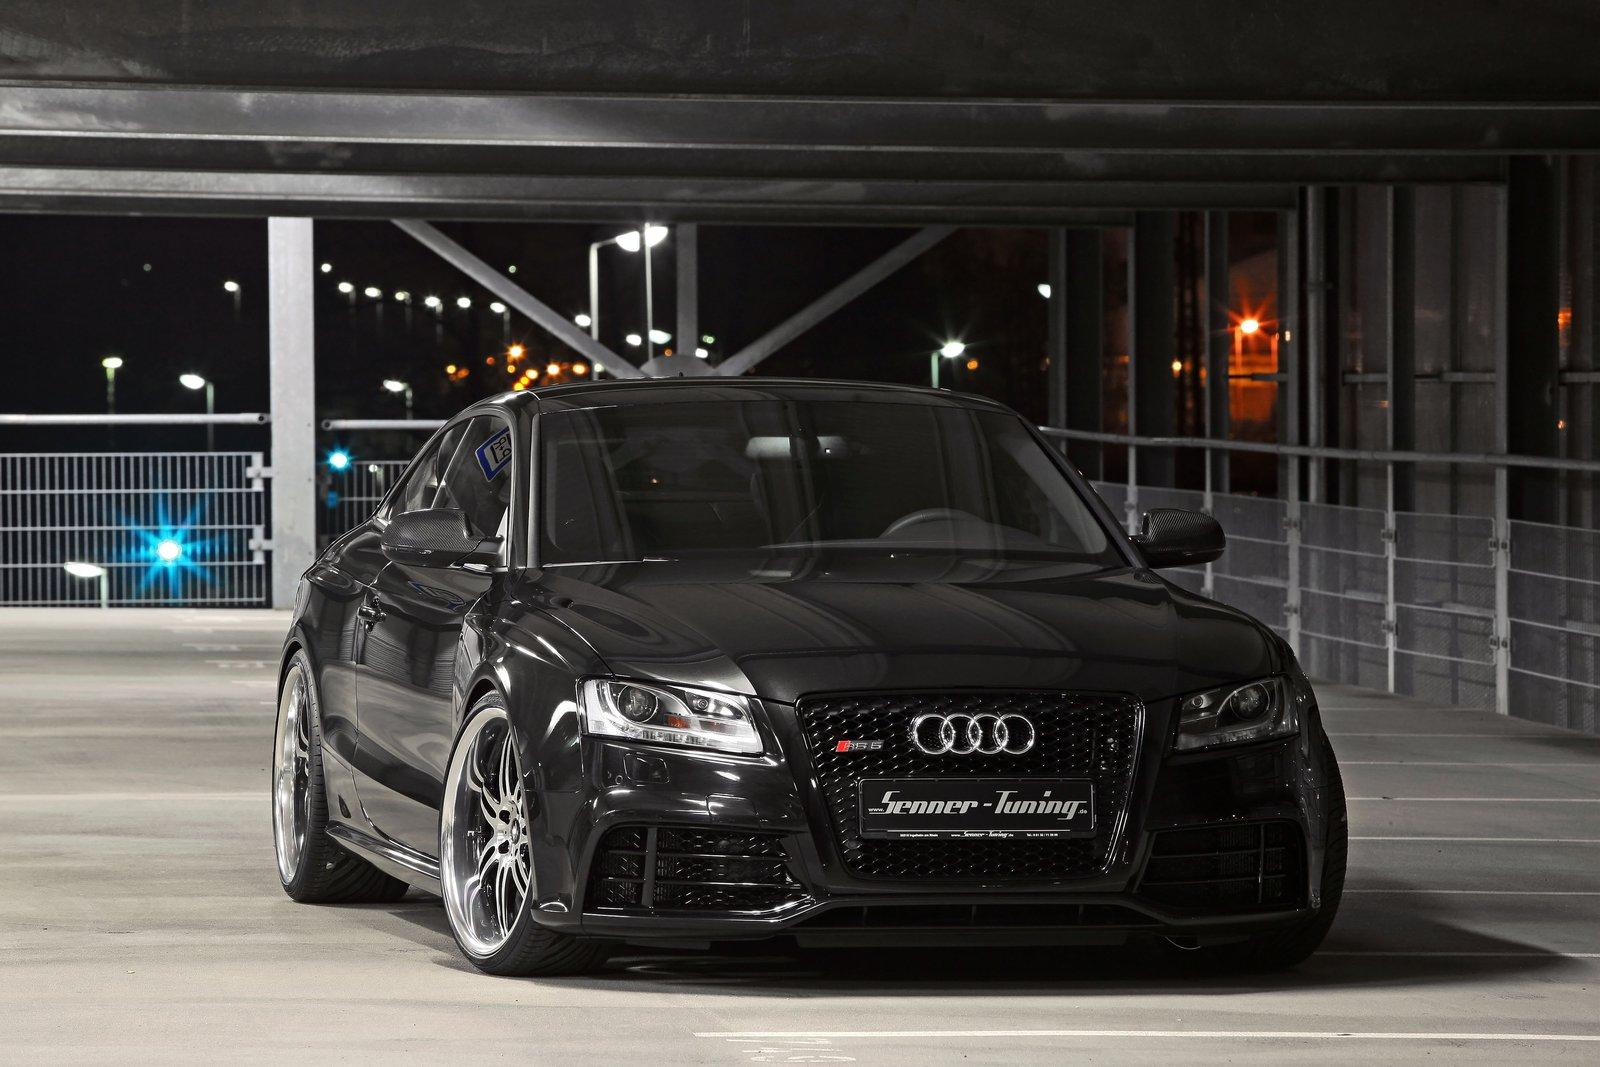 Exclusive Car Wallpapers Senner Tuning Audi Rs5